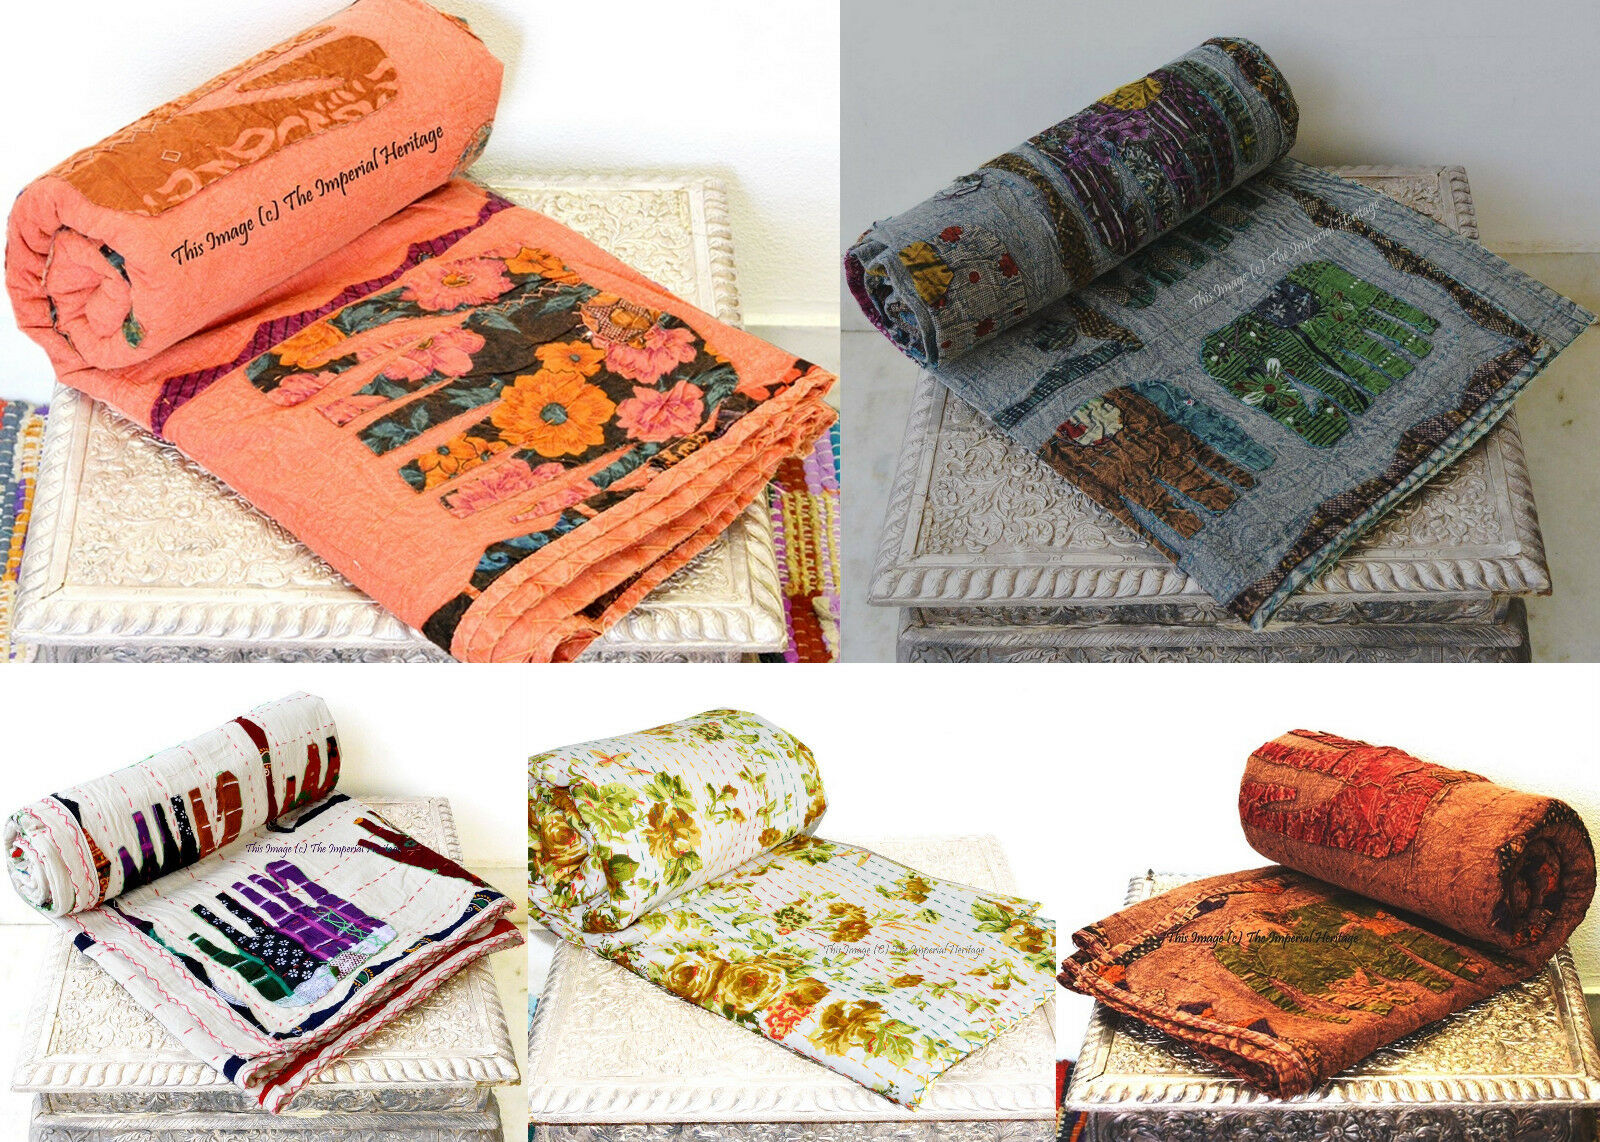 Queen Indian Handmade Kantha Blanket Quilt Throw Vintage 100% Cotton Bed Cover